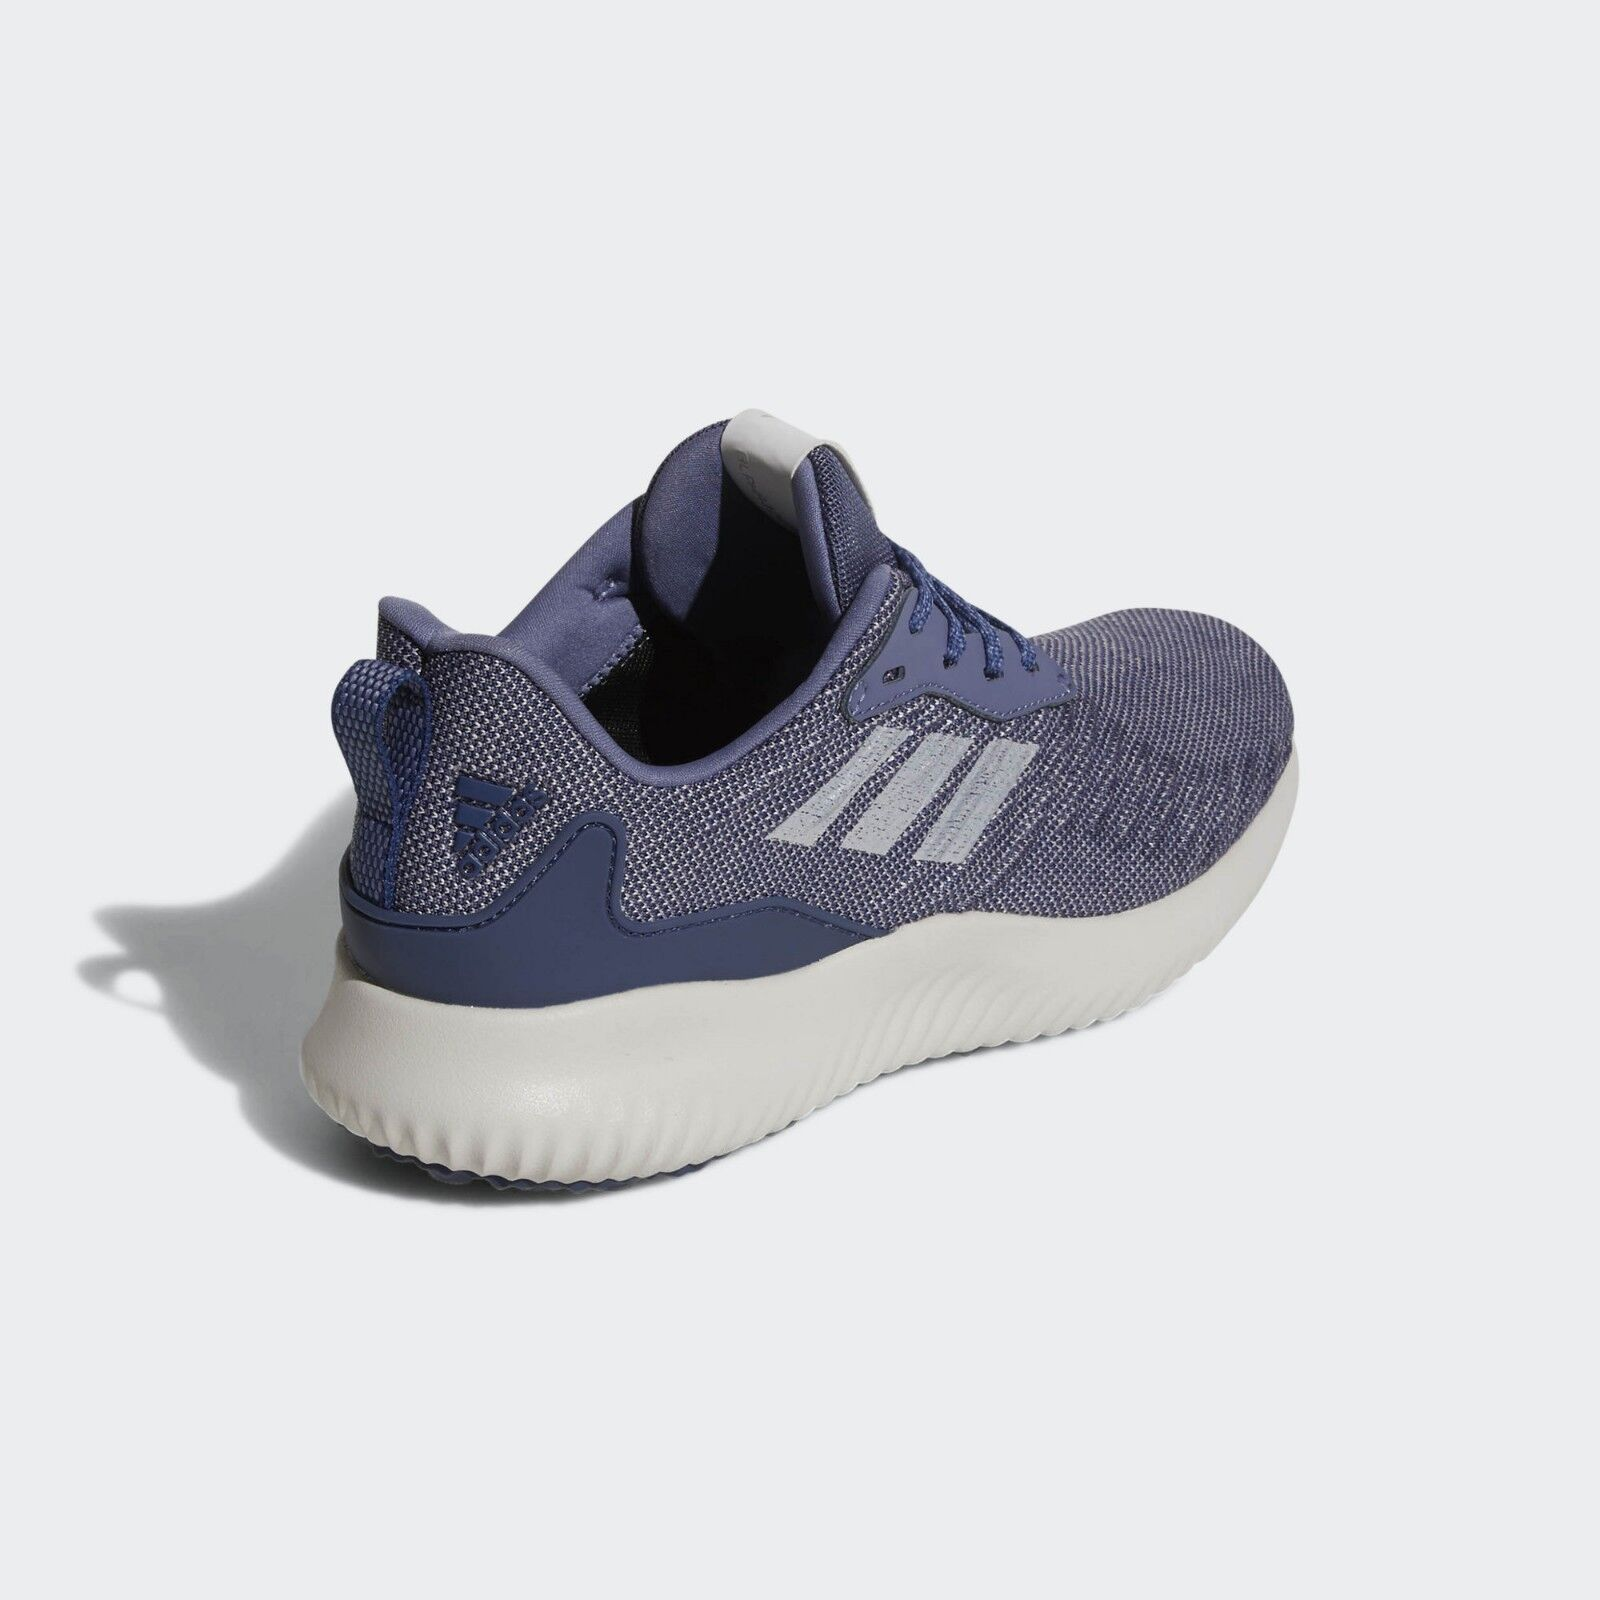 ~Nib~Adidas ALPHABOUNCE RC Shoes response boost energy Running Gym~Womens size 8